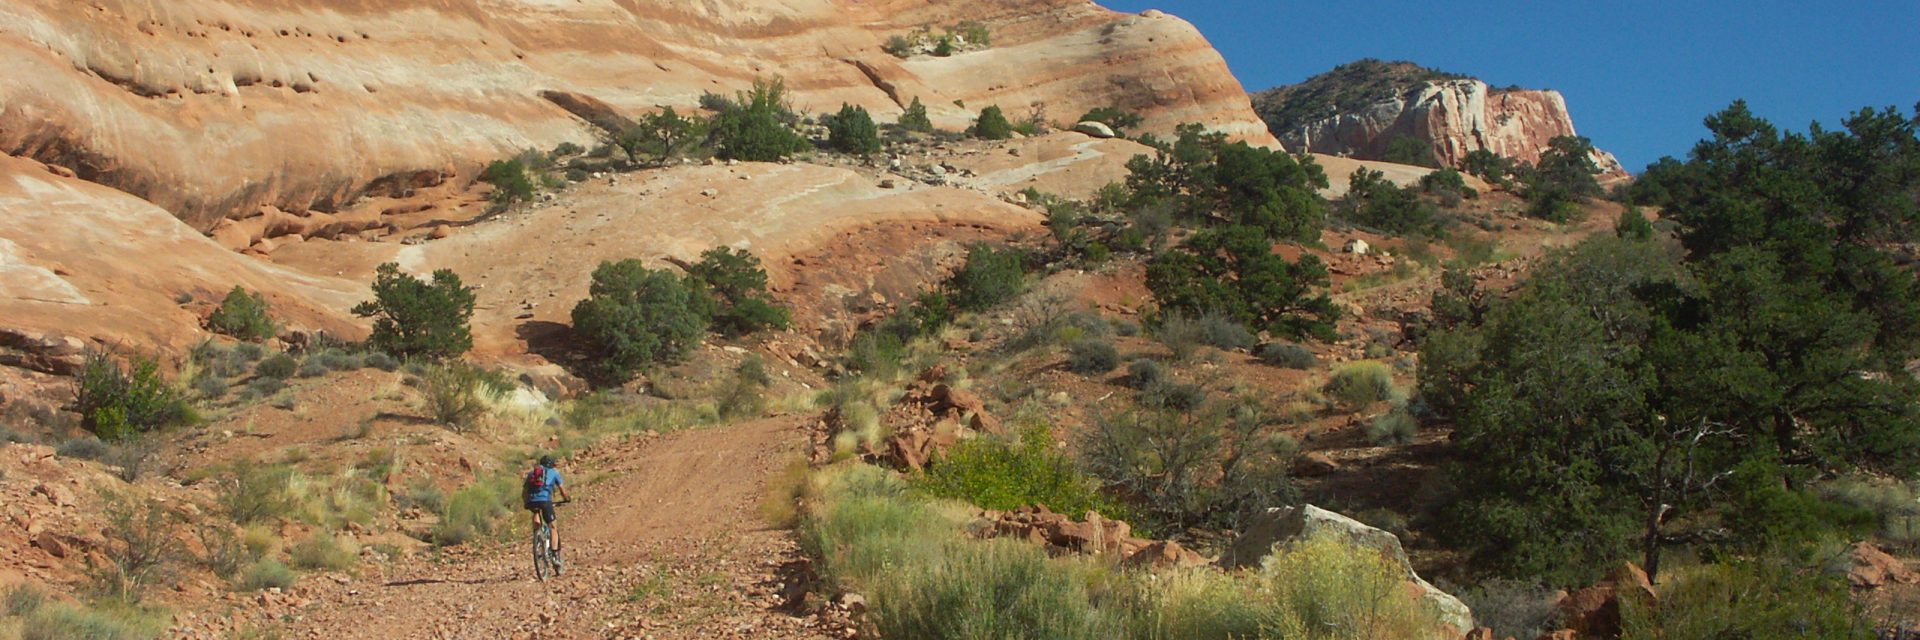 A lone rider climbs the Kokopelli Trail 5-day guided mountain bike tour from Loma CO to Moab UT